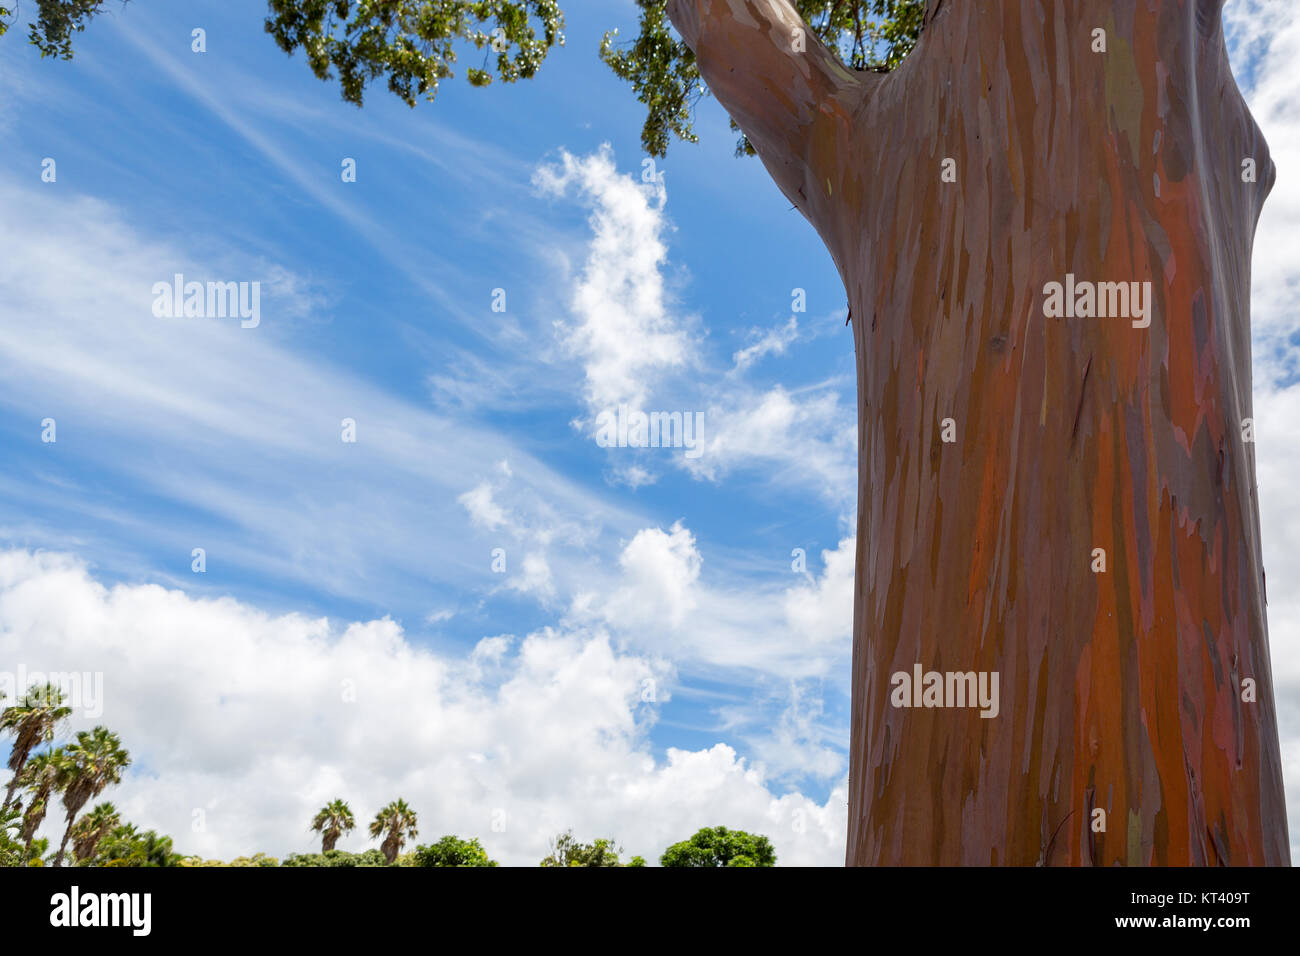 Trunk of a Eucalyptus deglupta tree in Oahu, Hawaii showing the typical peeling of the bark revealing green wood - Stock Image